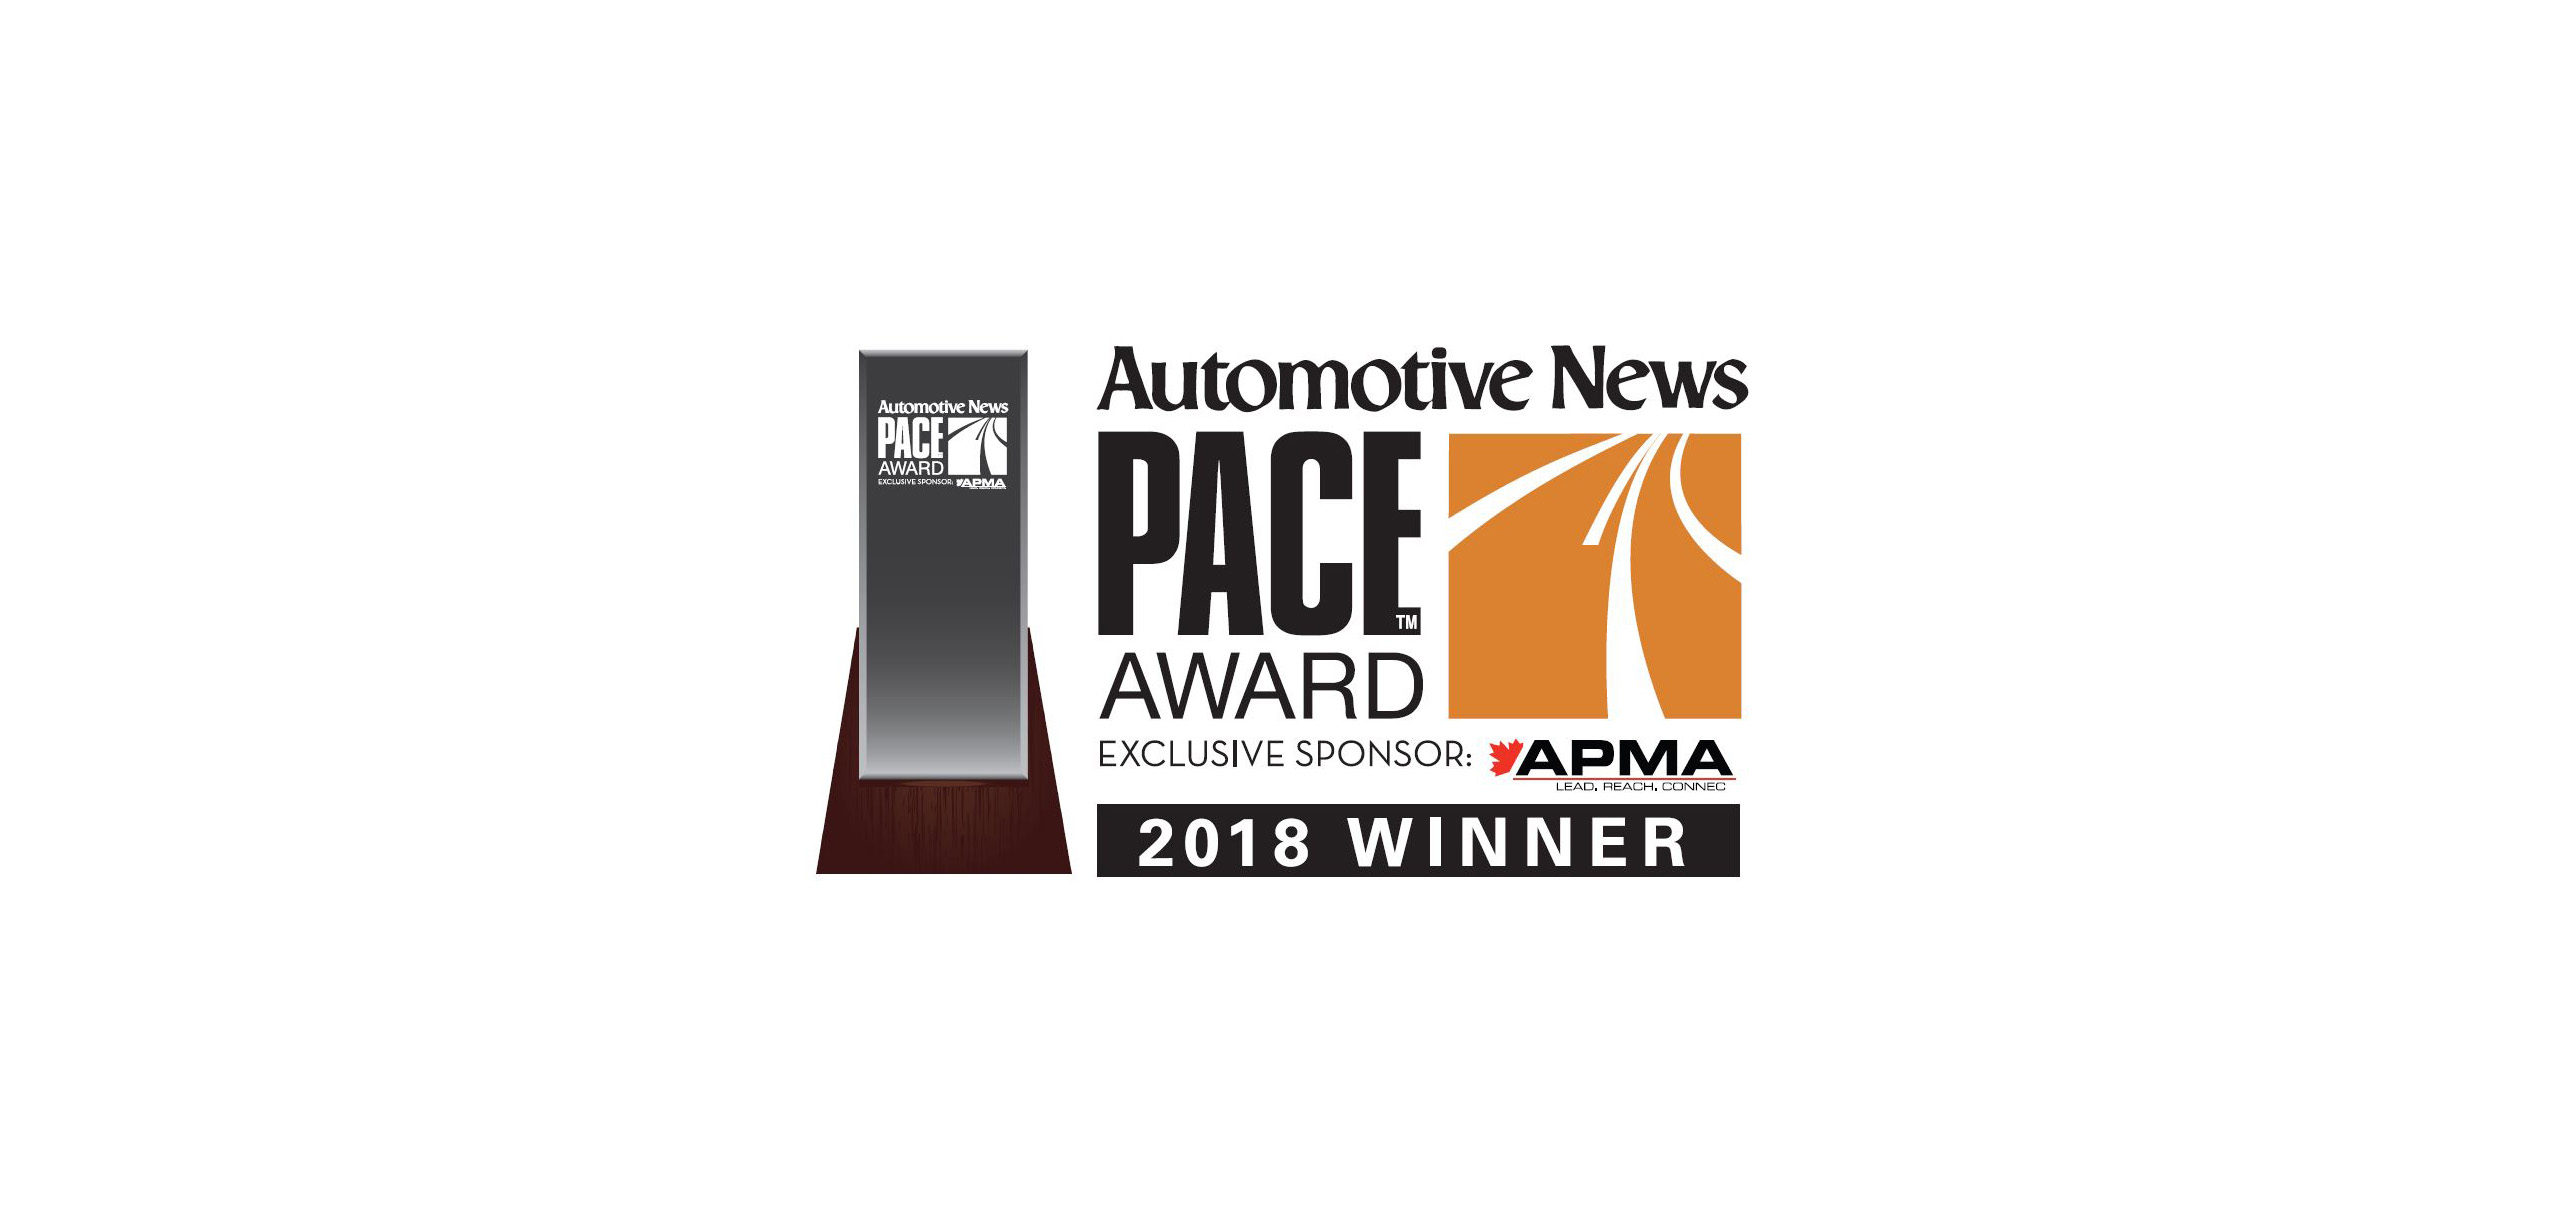 SKF conquista l'Automotive award 2018